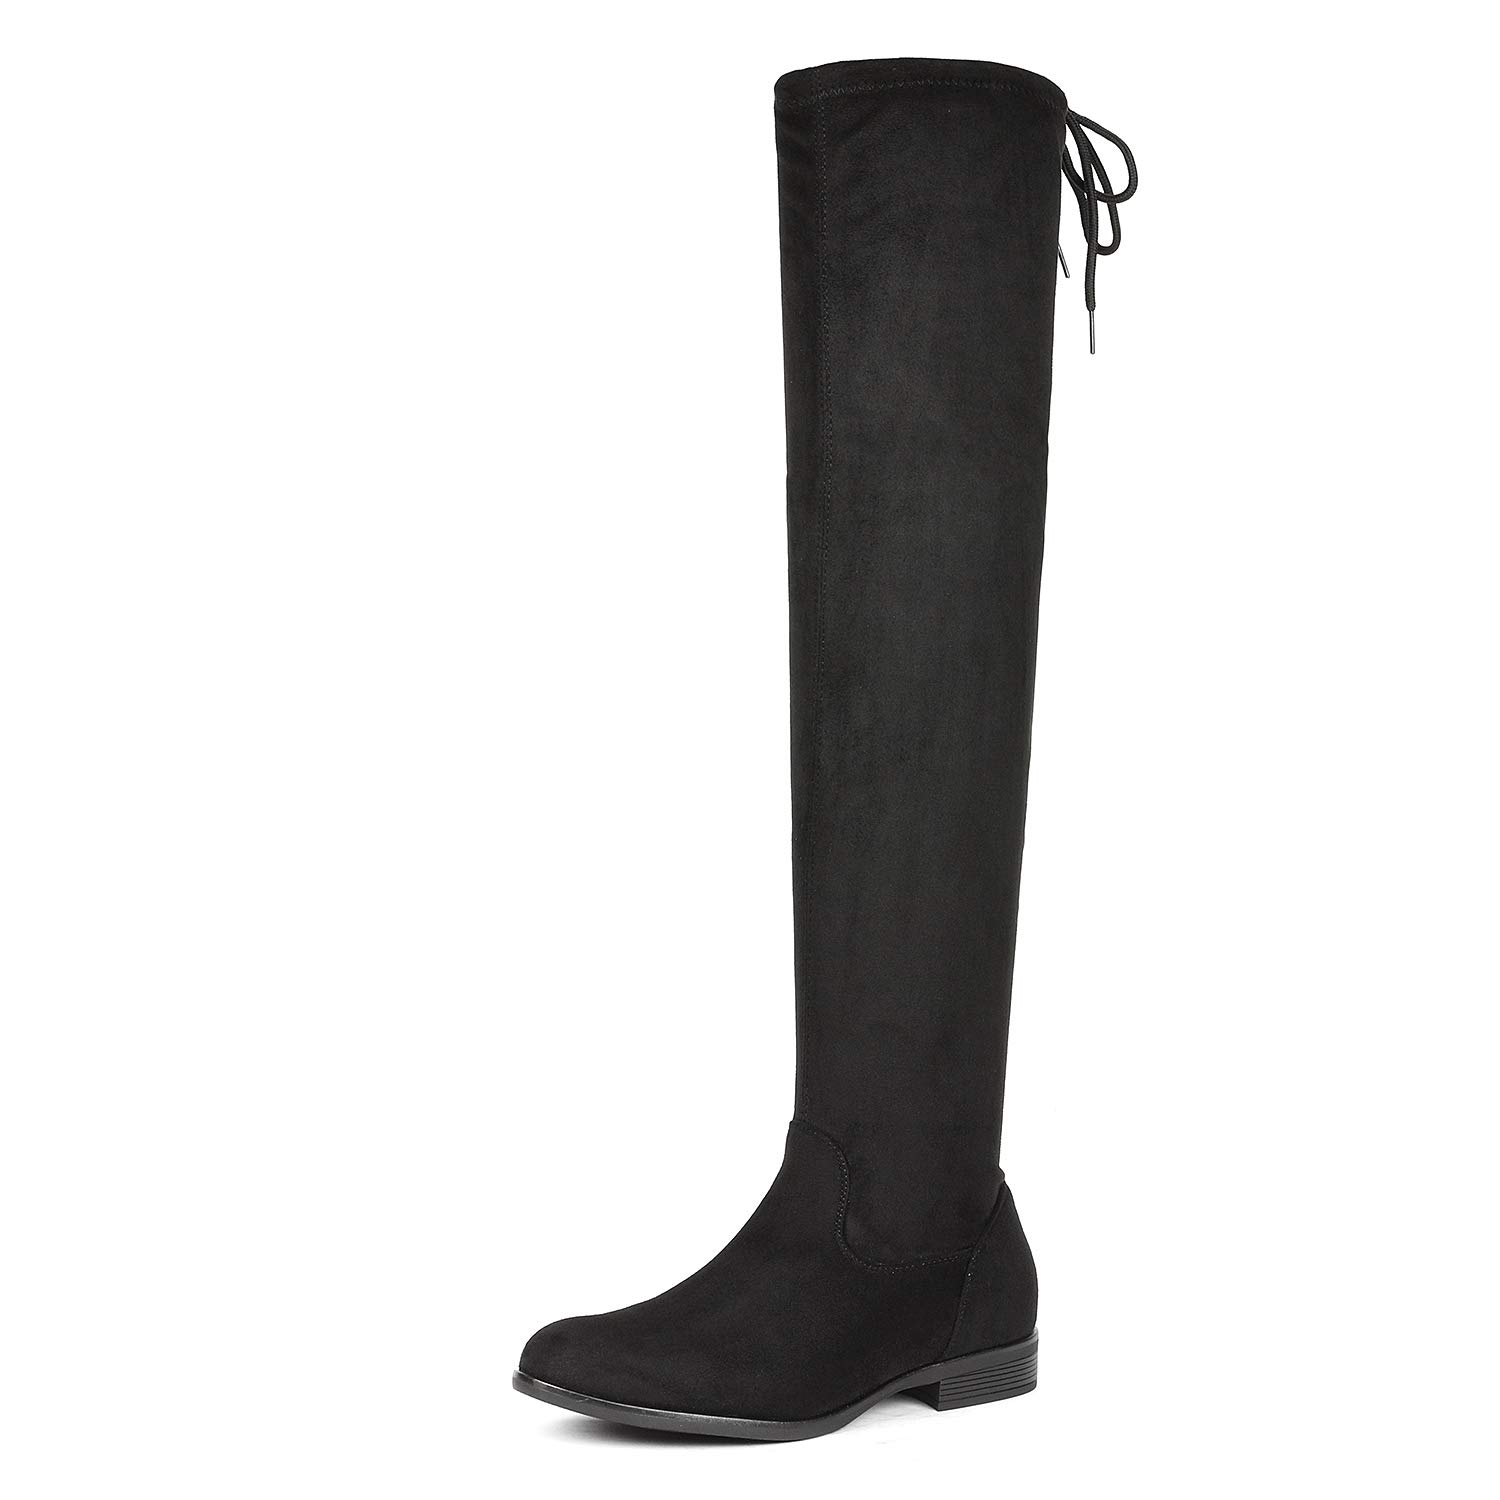 5015319a080f DREAM PAIRS Women's Suede Over The Knee Thigh High Winter Boots product  image